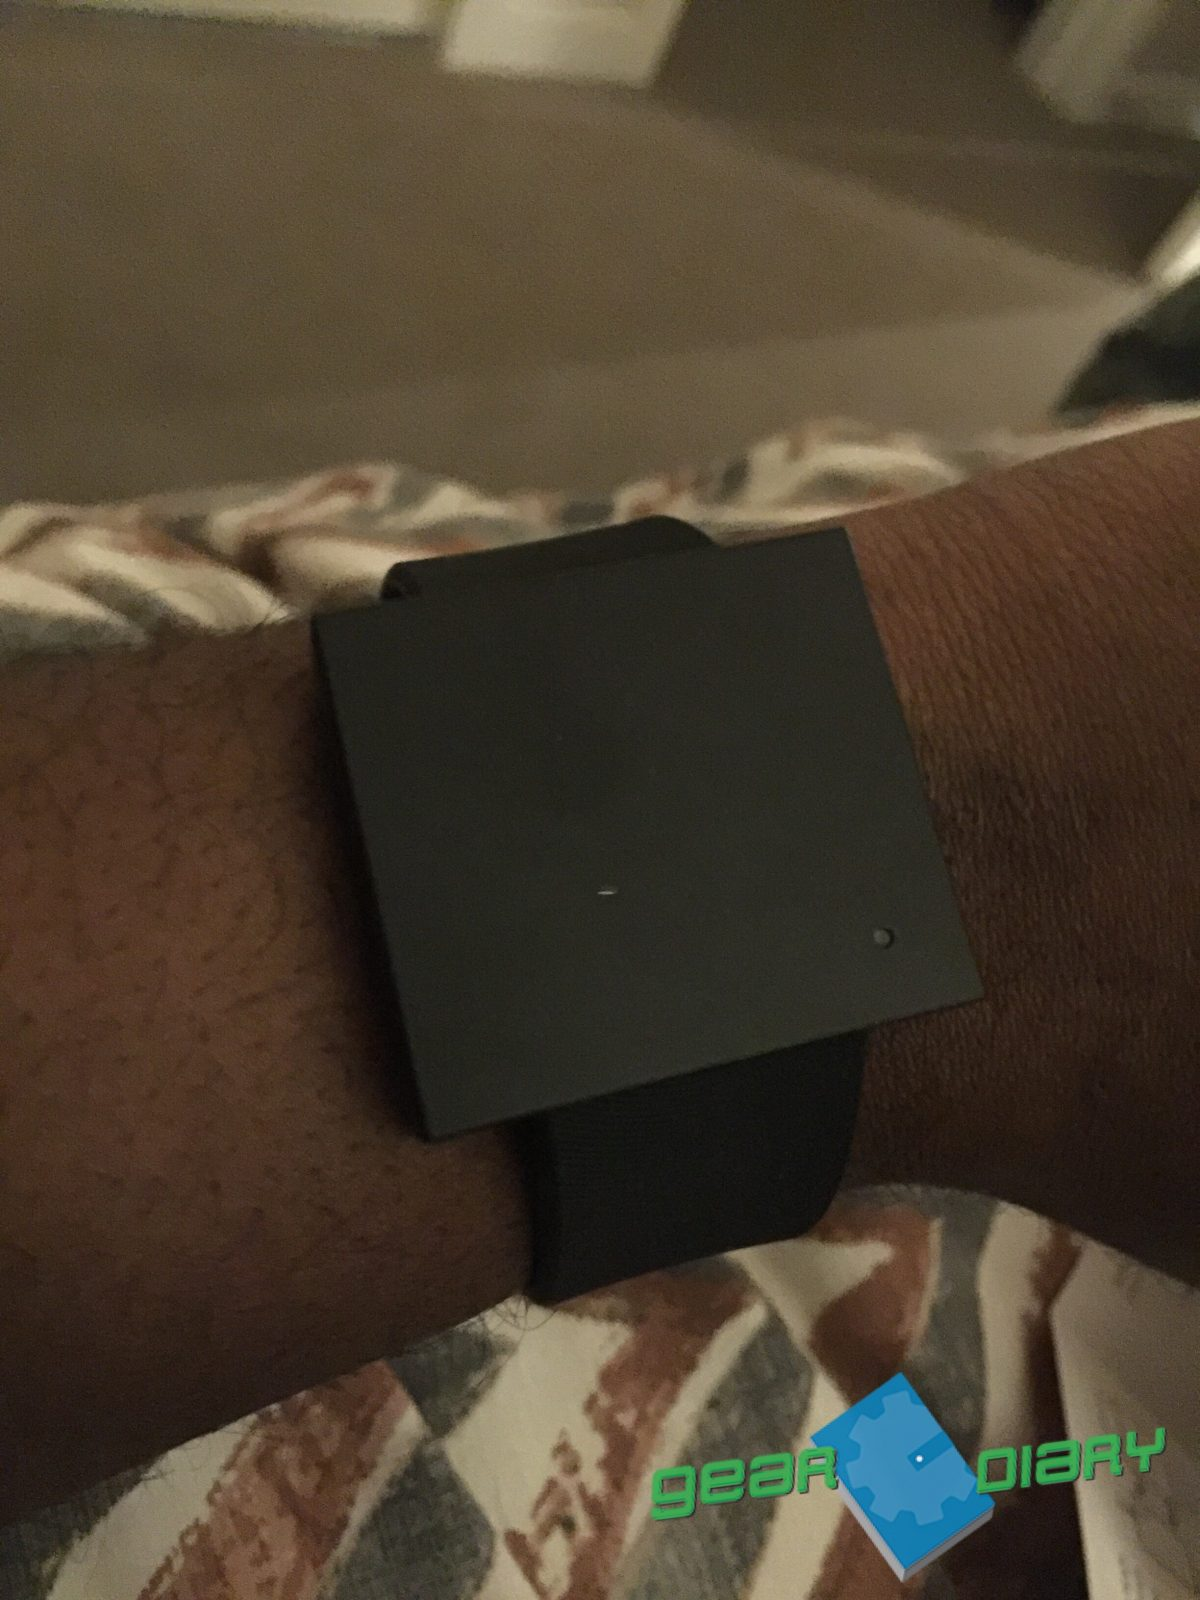 Headphones Give You Sound, but the Basslet Lets You Feel the Music